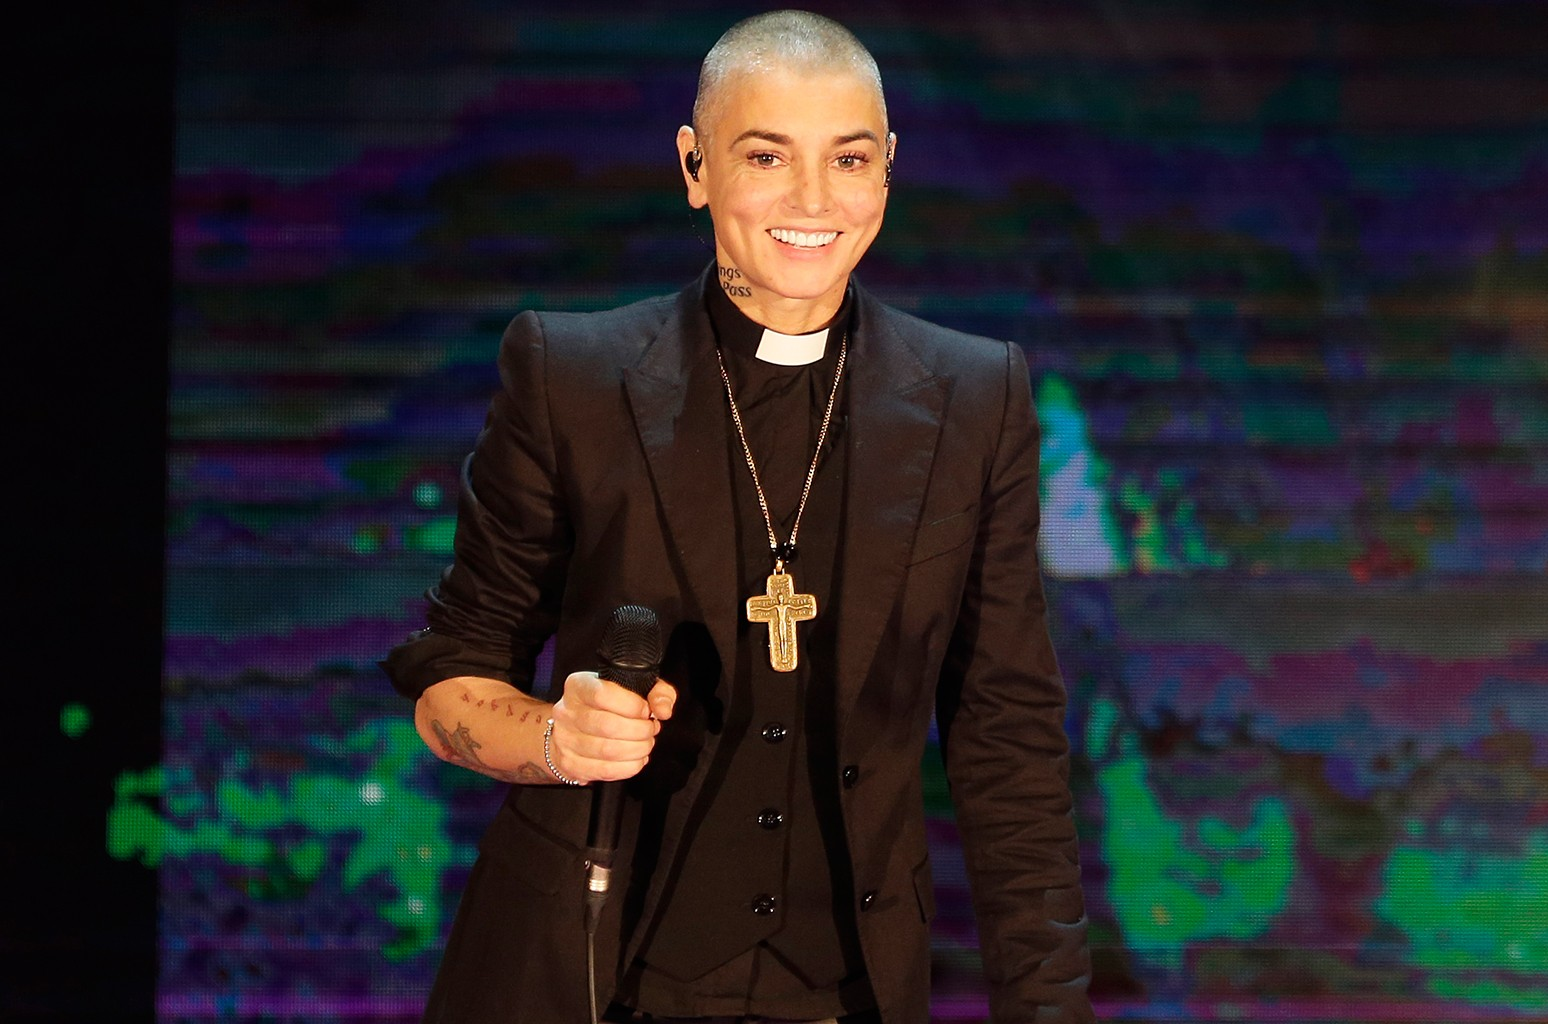 Magda Davitt Formerly Known As Sinead O Connor Releases First Song In Four Years Billboard